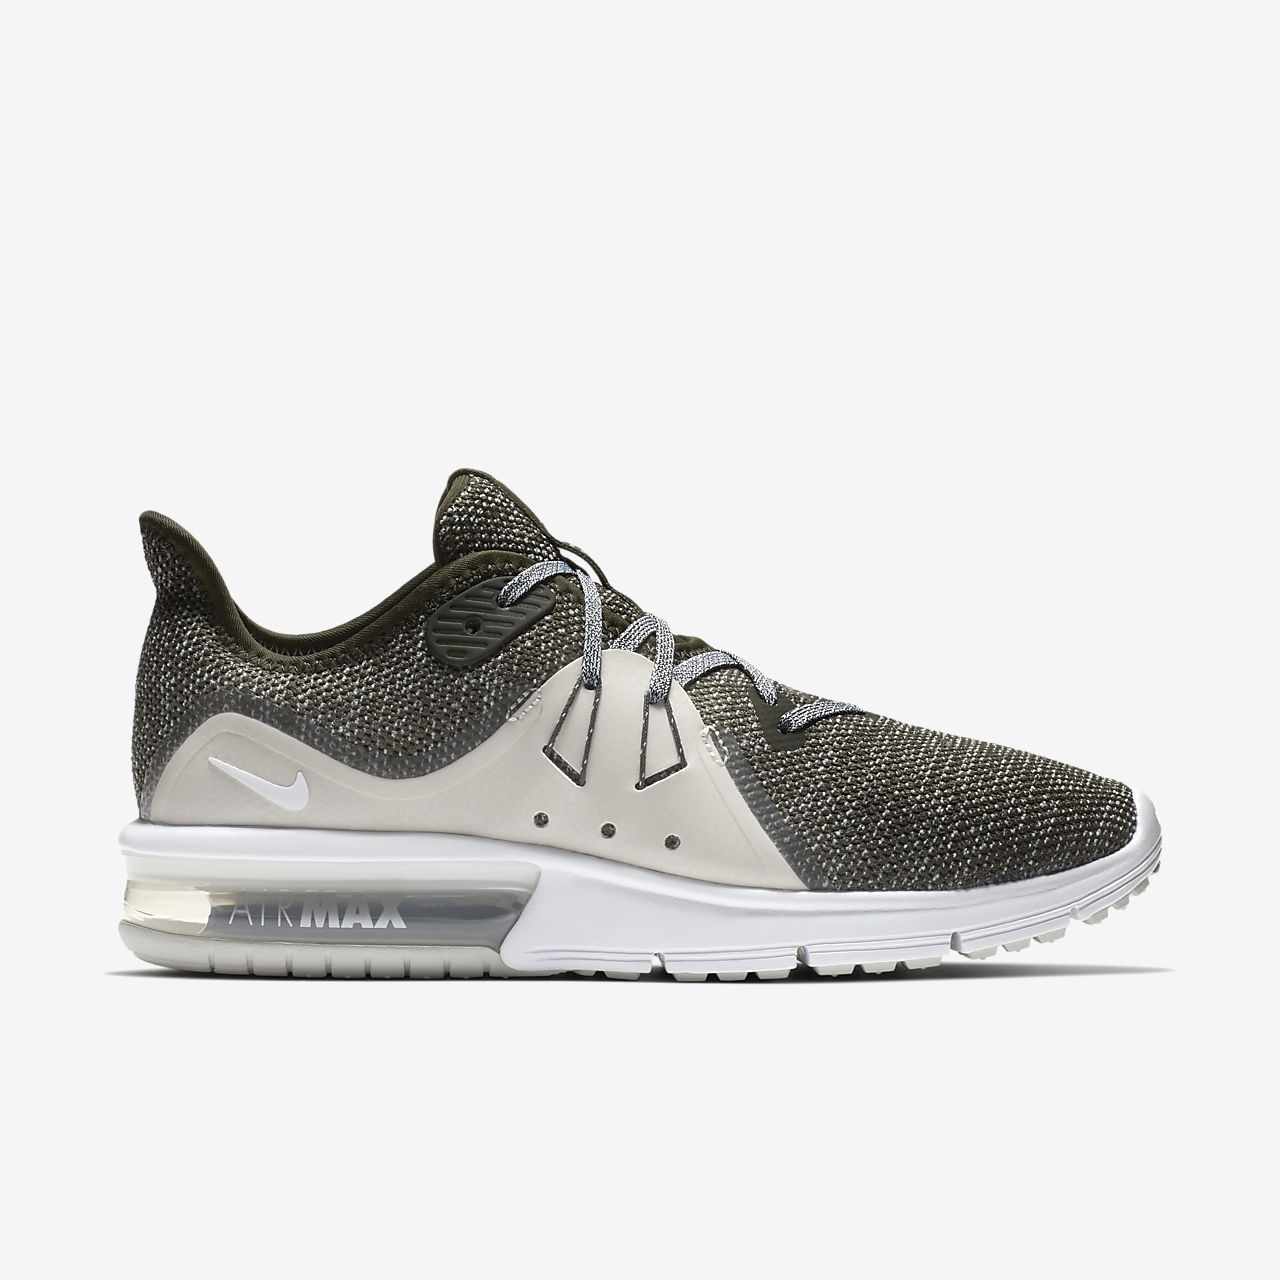 abf46b437df5 ... low resolution nike air max sequent 3 womens running shoe nike air max  sequent 3 womens